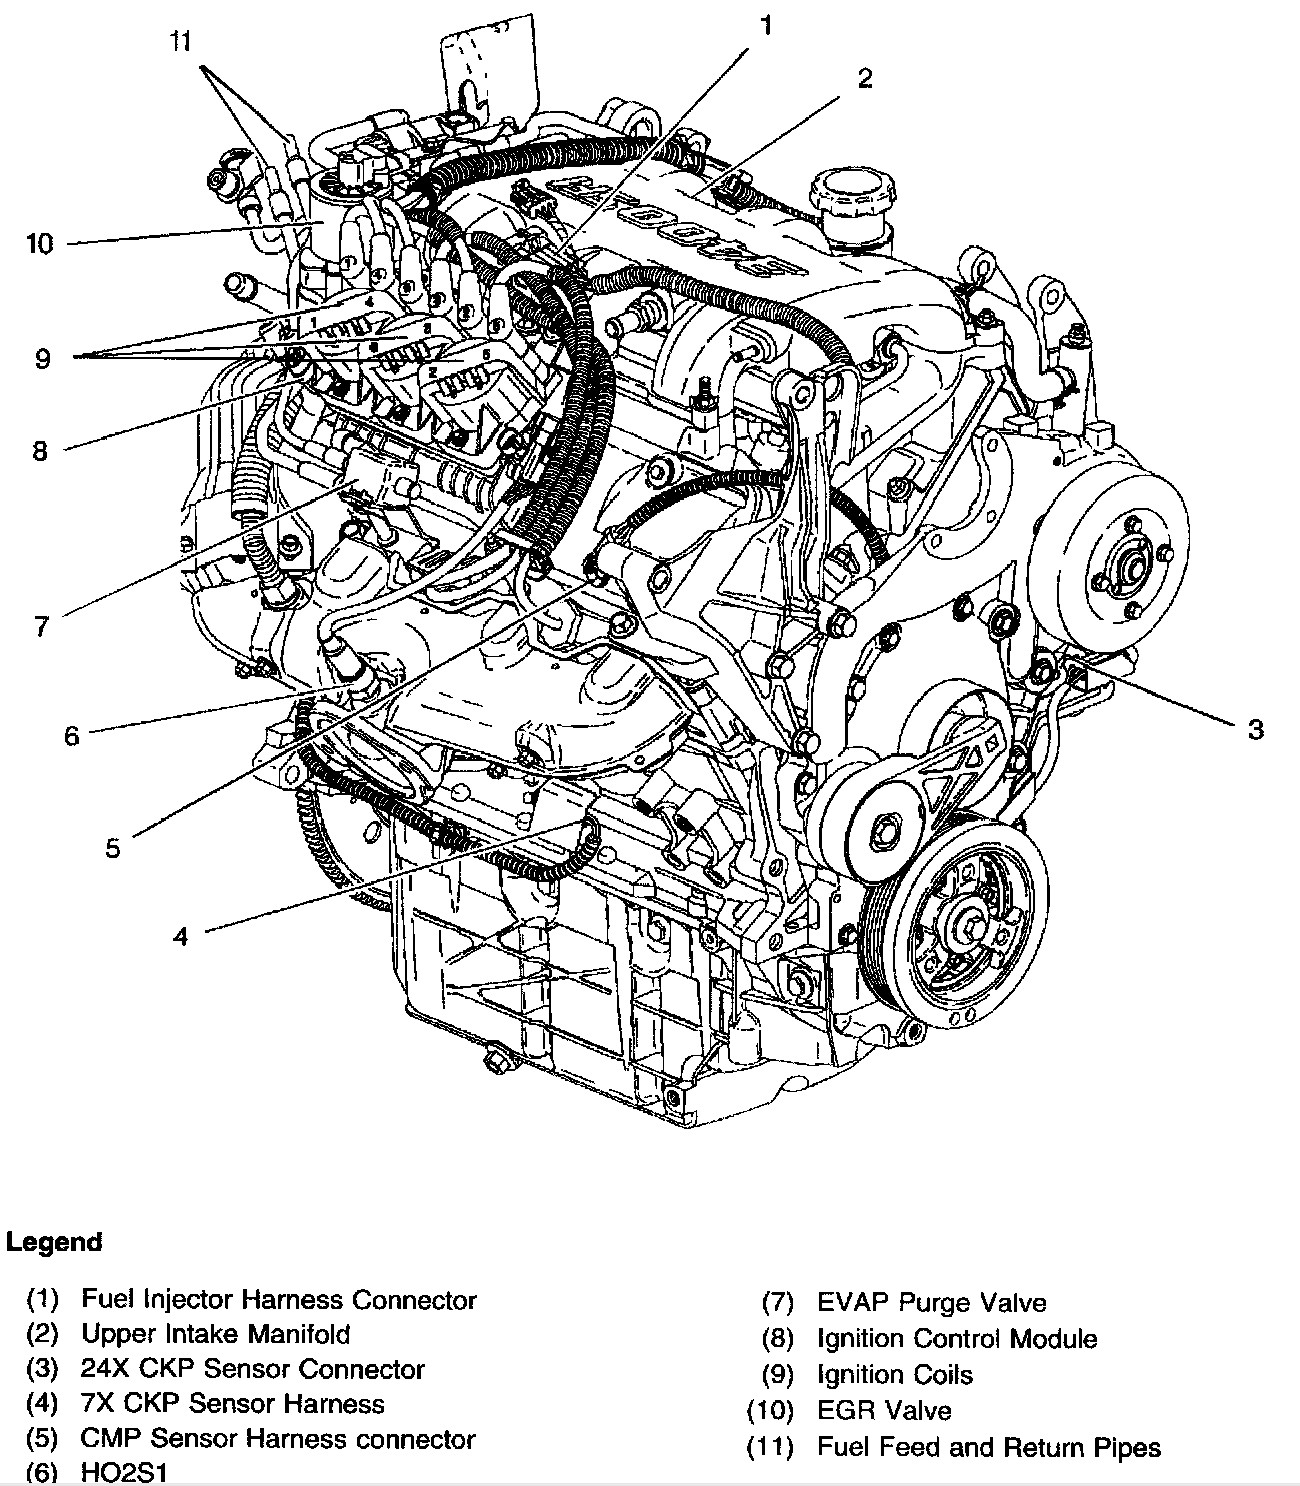 hight resolution of 1993 toyota v6 engine exhaust diagram wiring diagram structure 1993 toyota v6 engine exhaust diagram